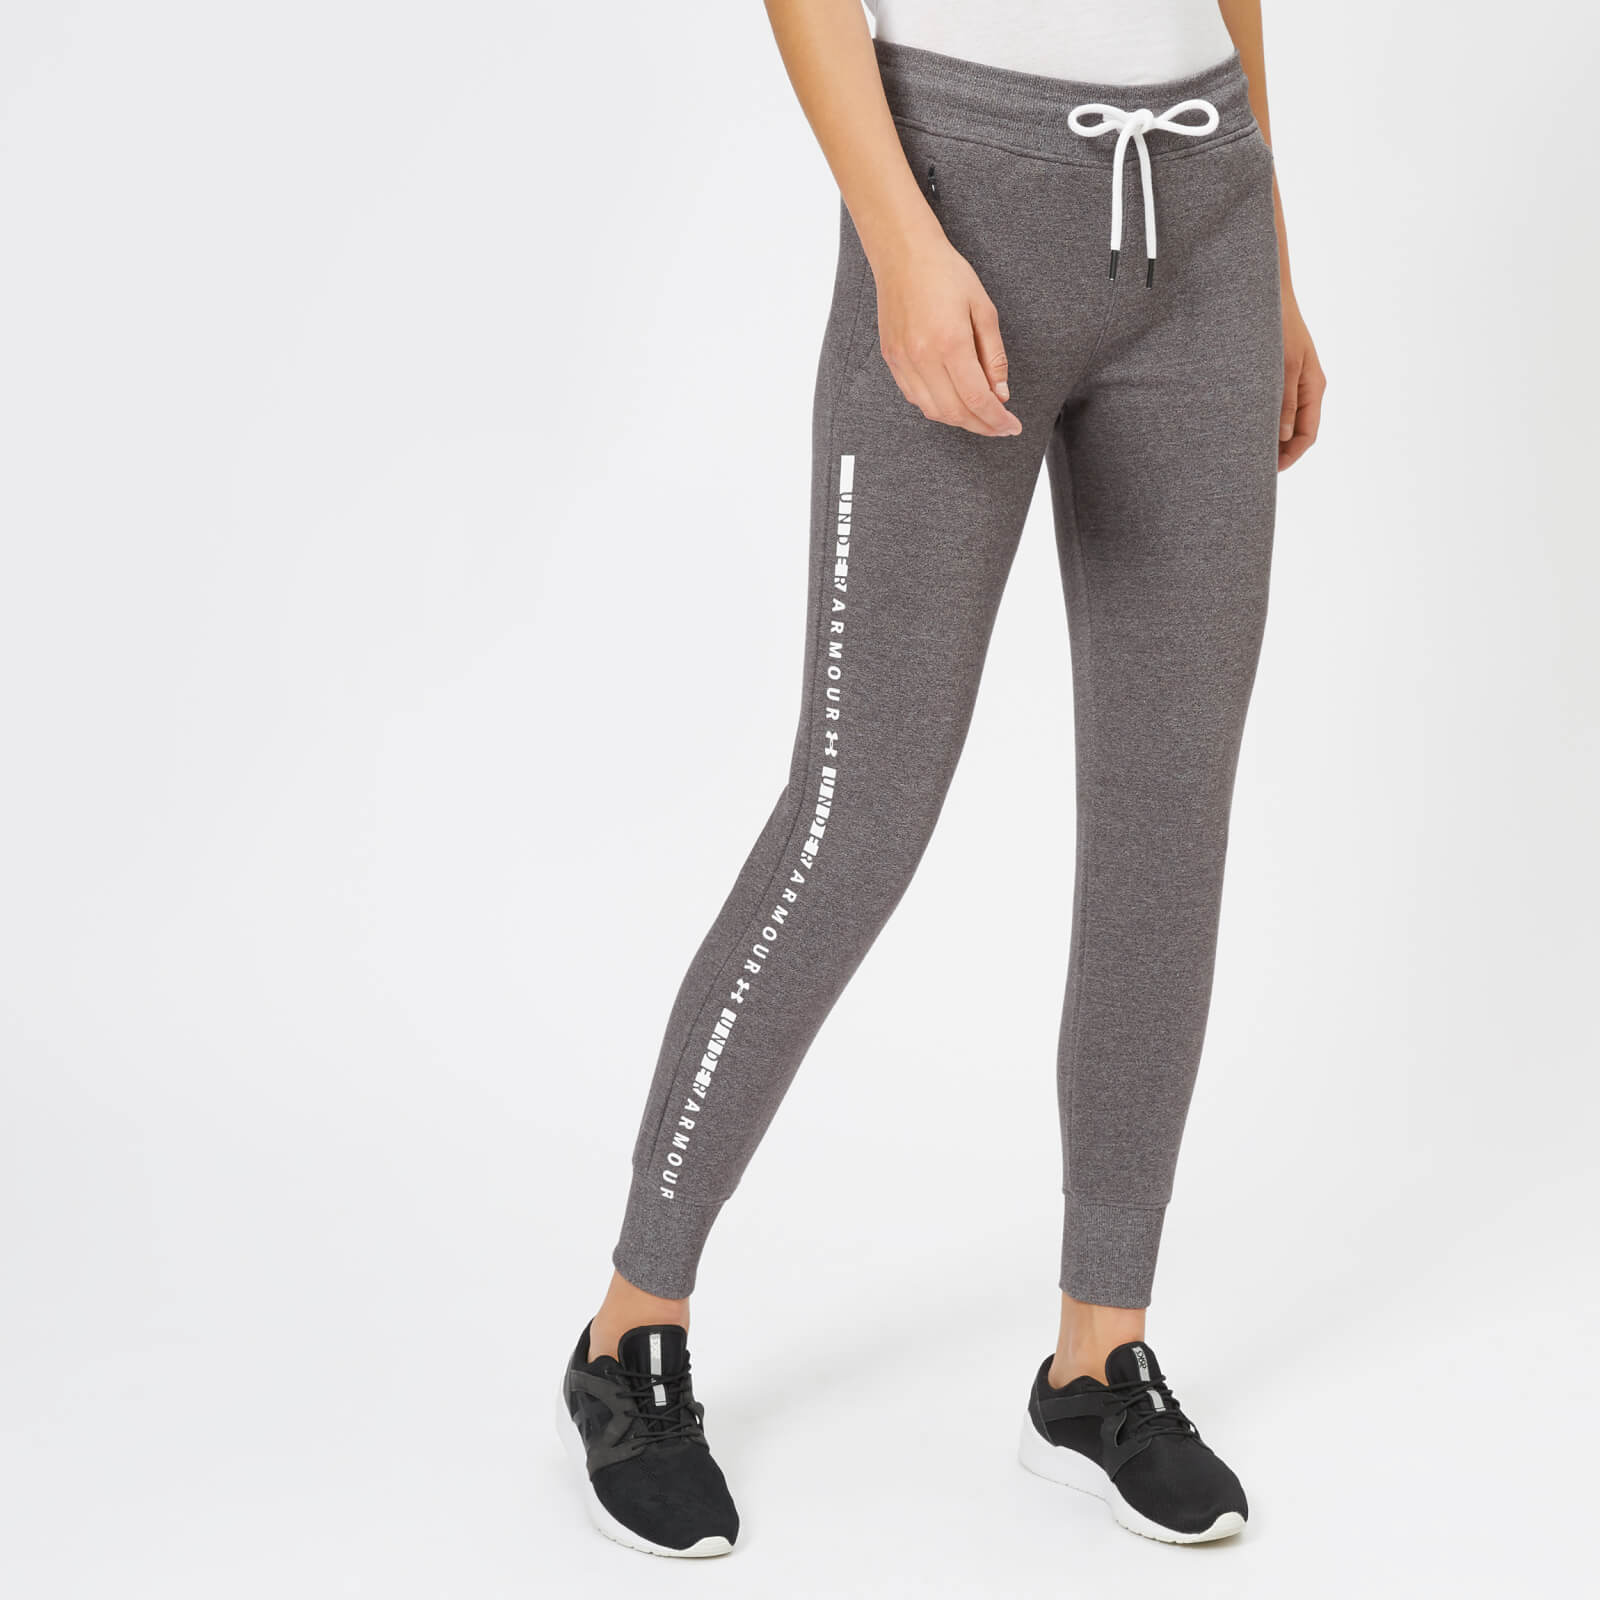 aa94788f Under Armour Women's Ottoman Fleece Pants - Charcoal Light Heather Sports &  Leisure | TheHut.com